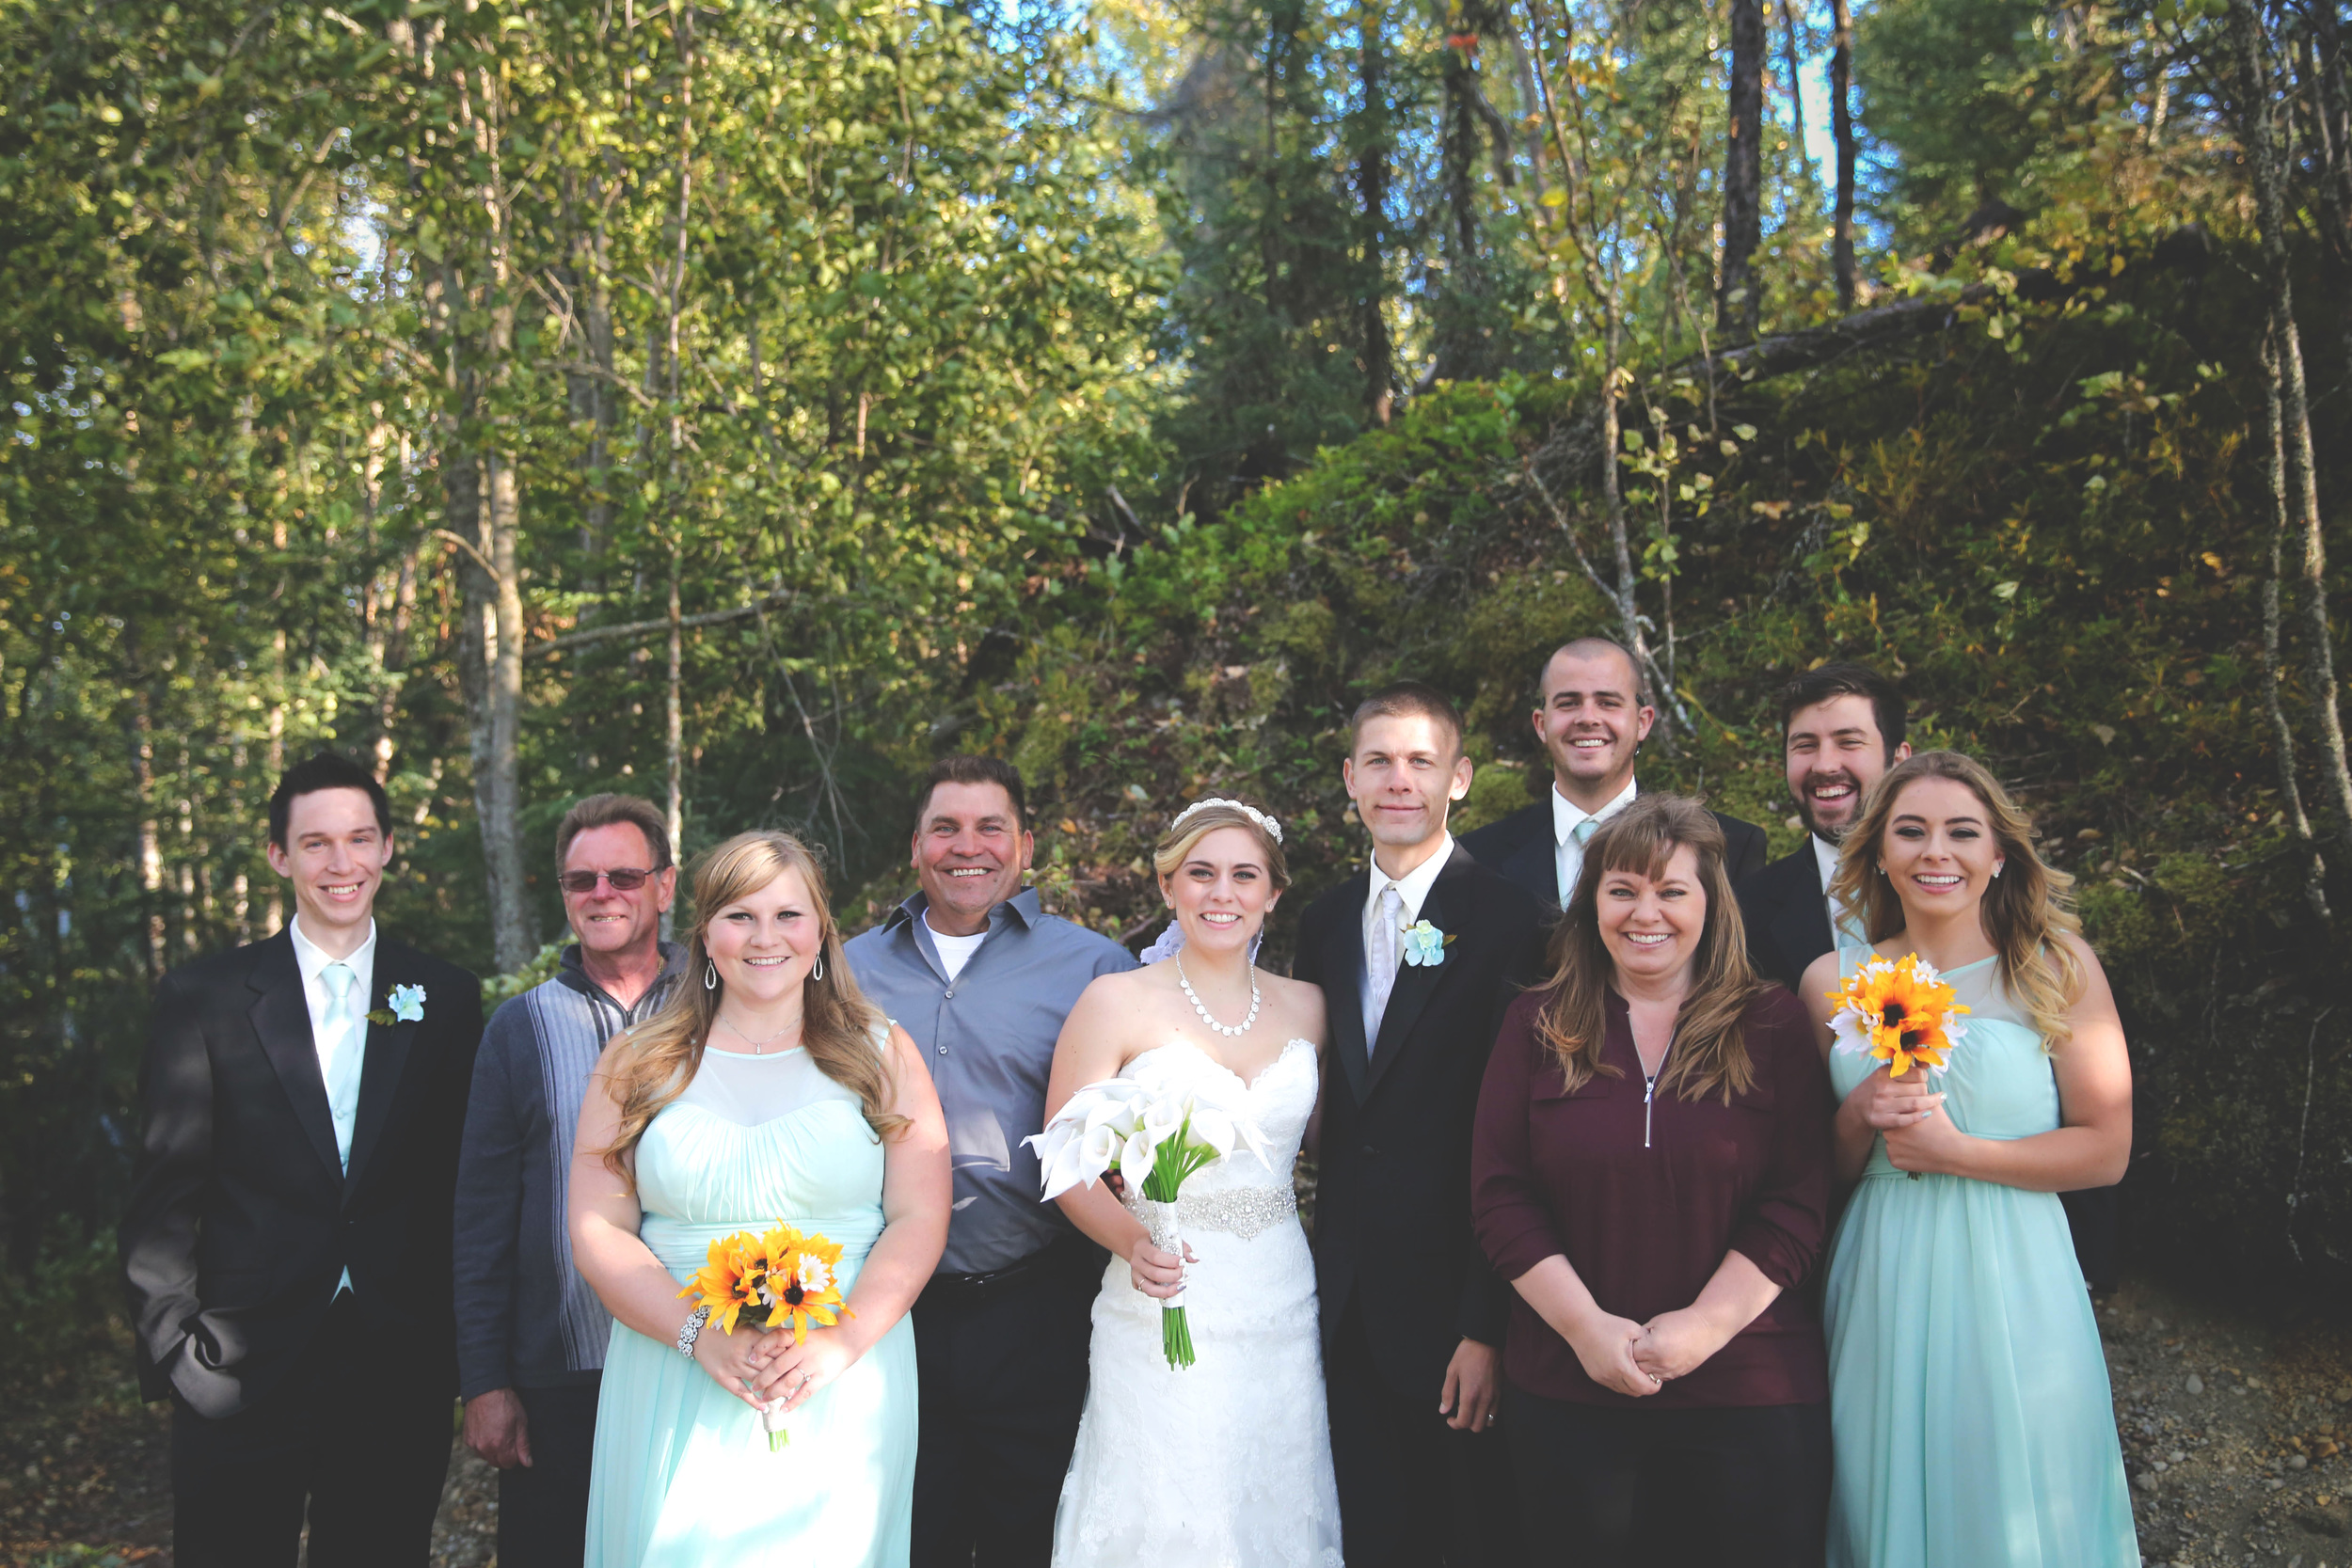 The whole group! I just have to say, everyone was so fun and I love the genuine laughter in this photo. And thanks to Jonny for being such a good sport. :)